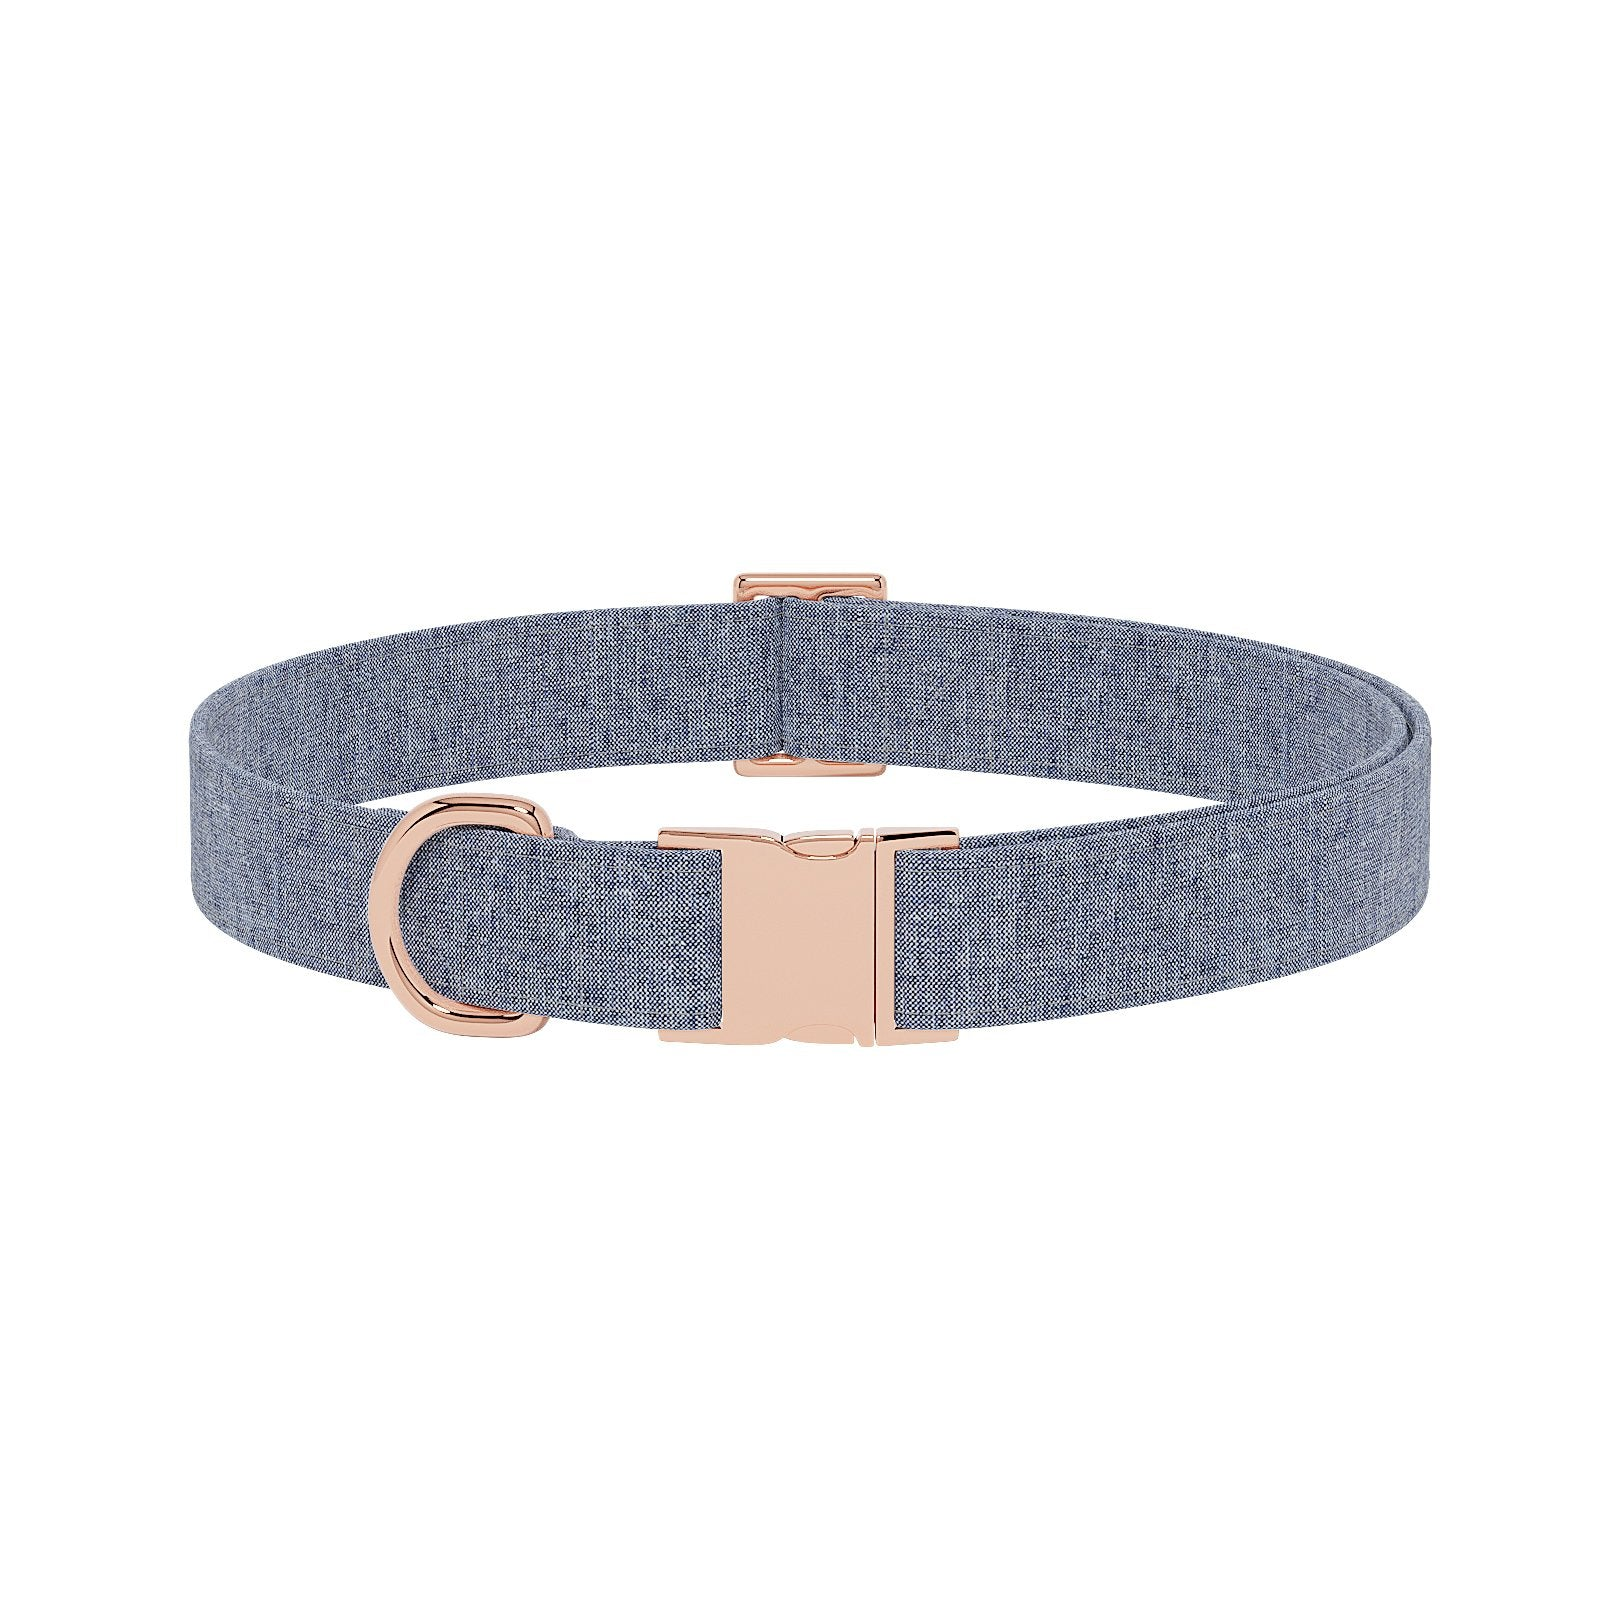 Linen Denim Dog Collar